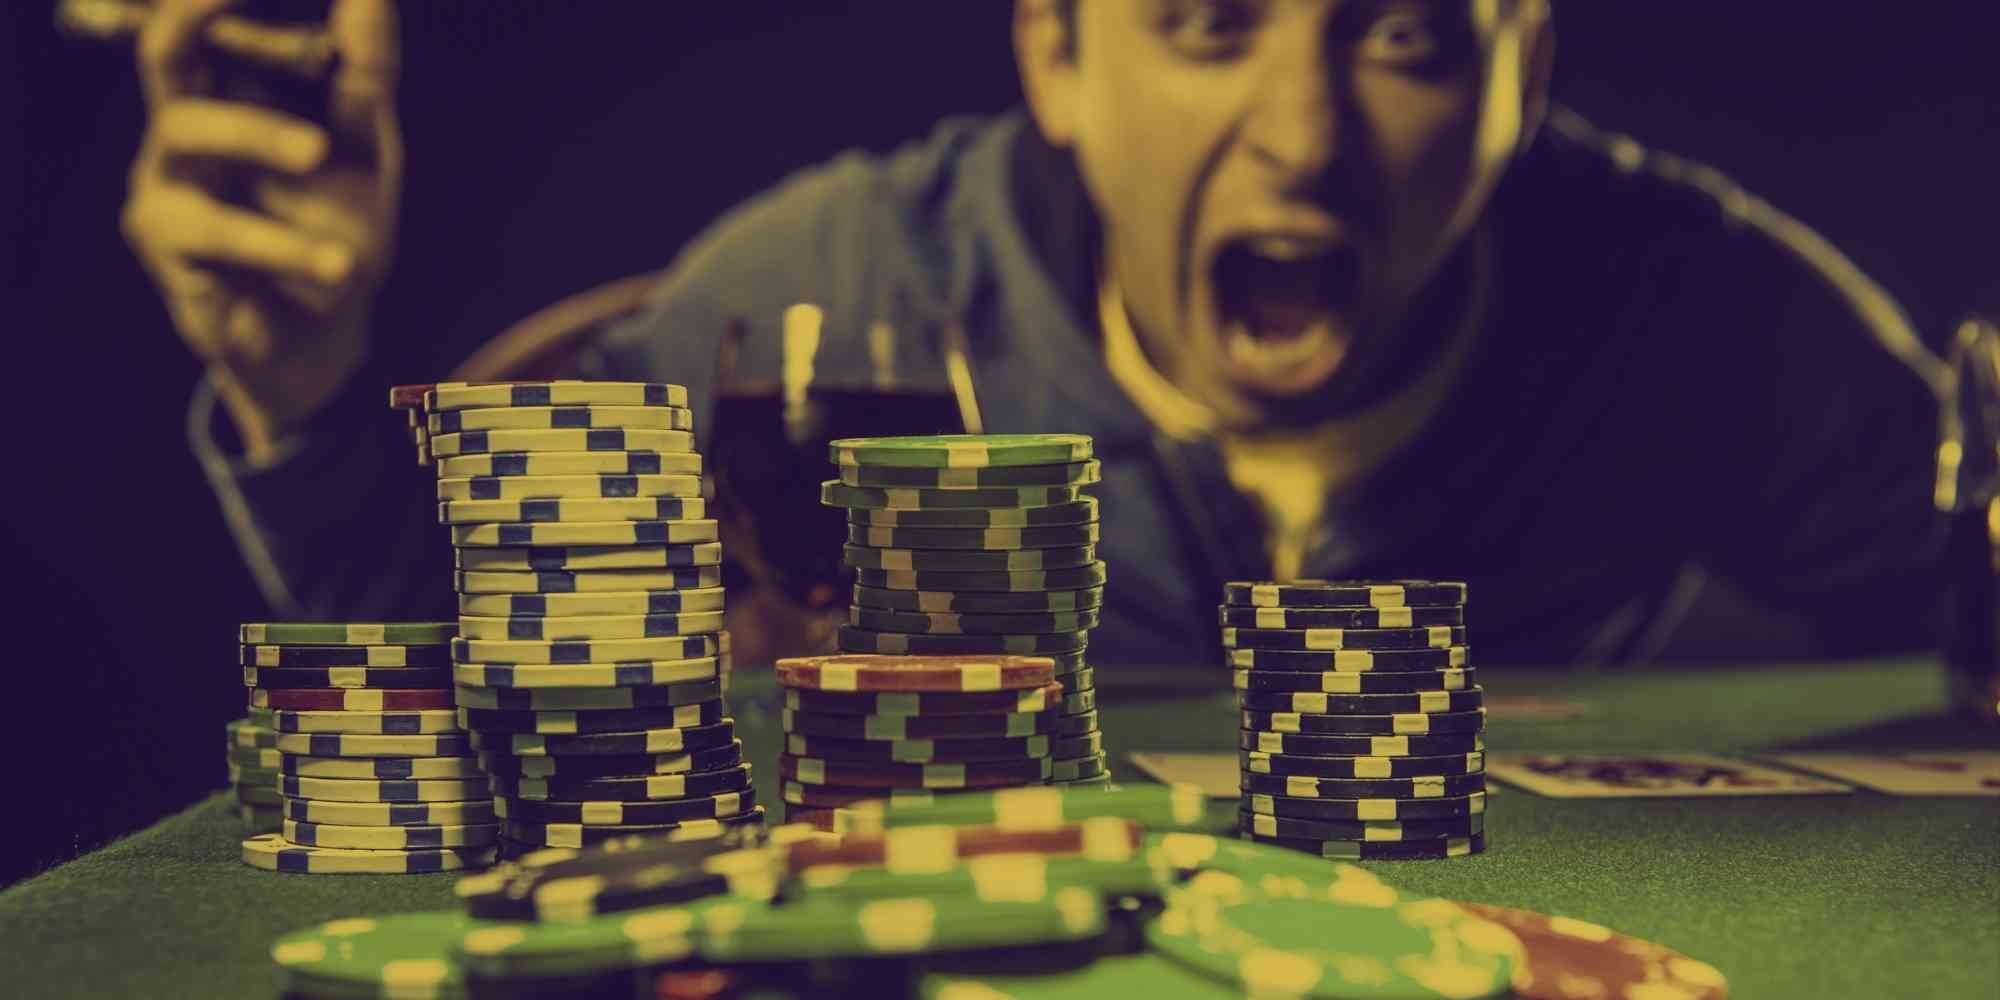 What Is So Difficult About Learning to Play Poker?